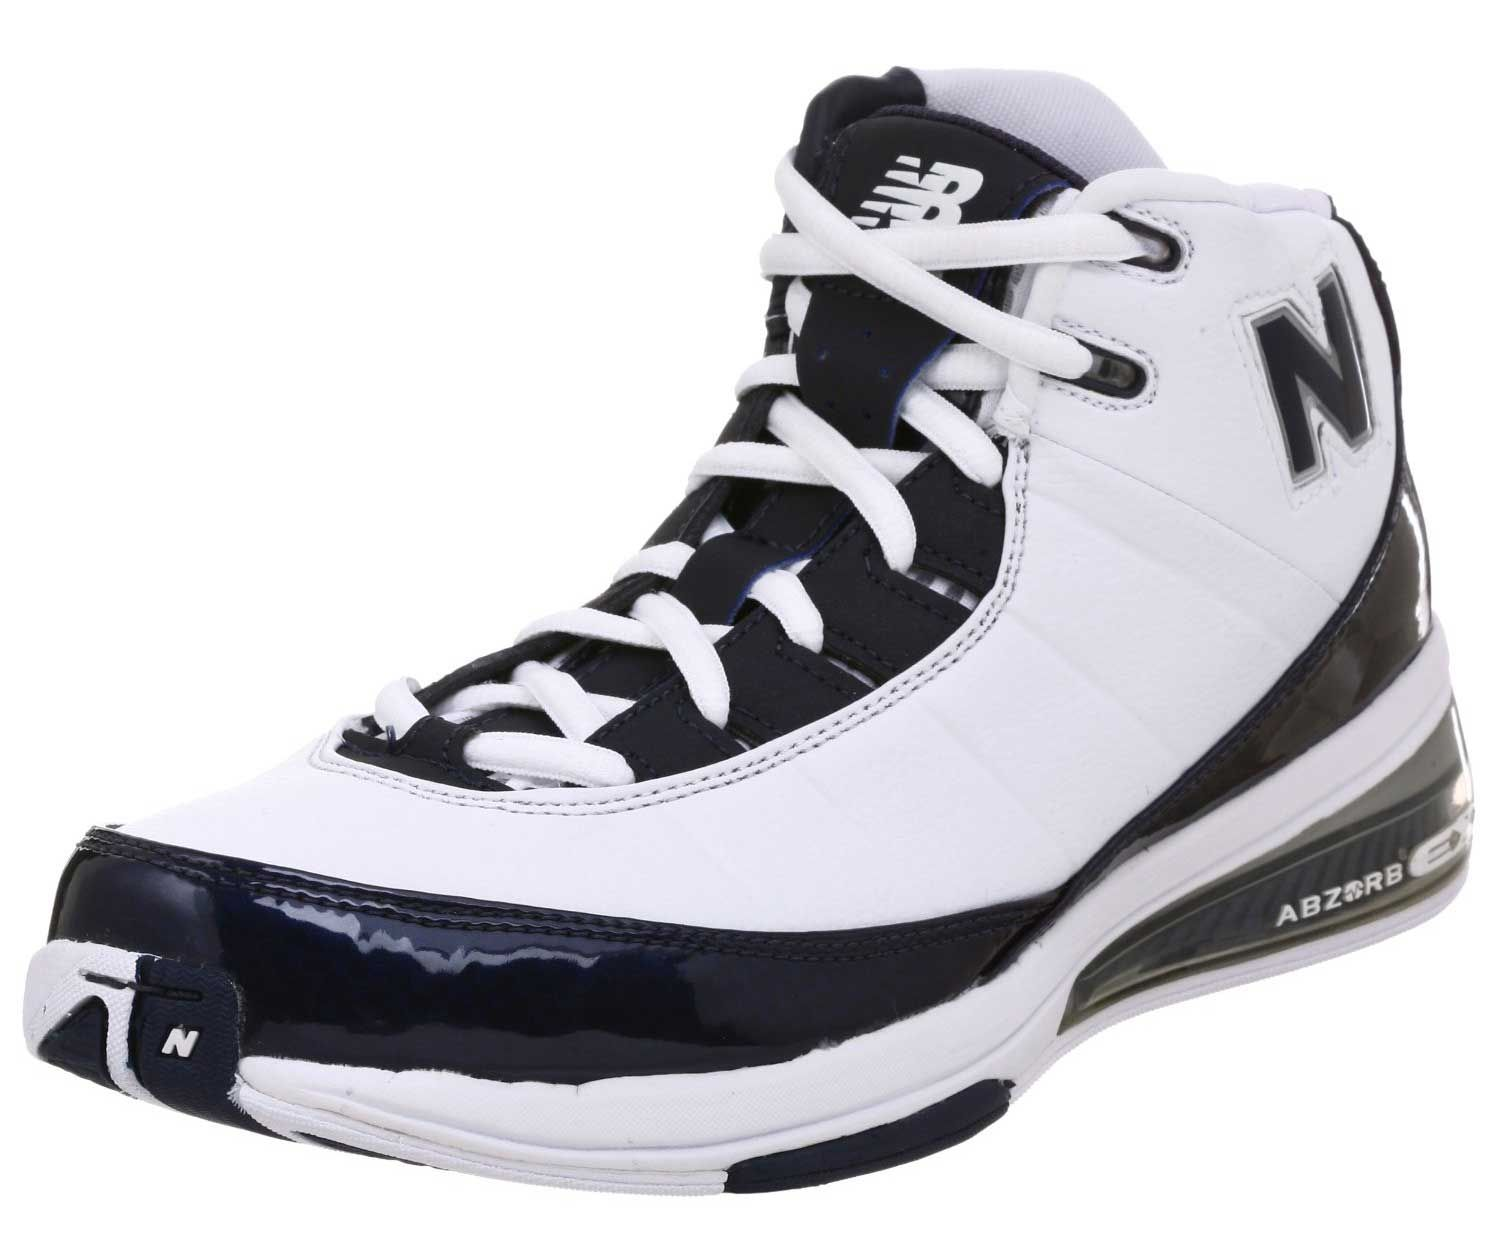 acheter populaire 93f78 0e360 athletic new balance basketball shoes BB889NV abzorb | shoes ...